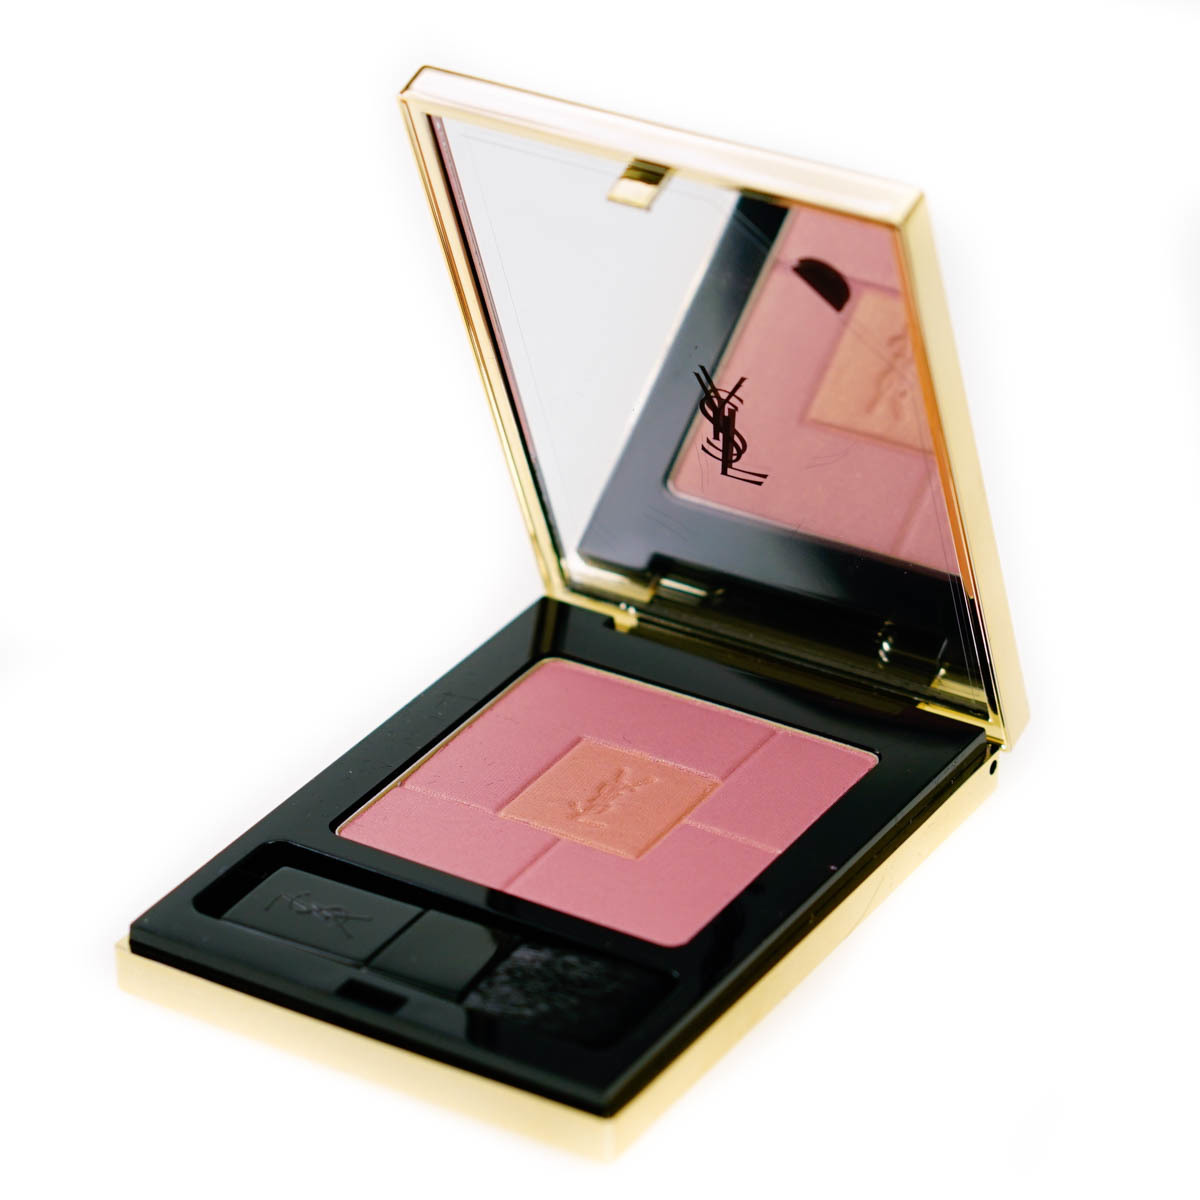 59cd25a18540 Макияж  Румяна Yves Saint Laurent Blush Volupte